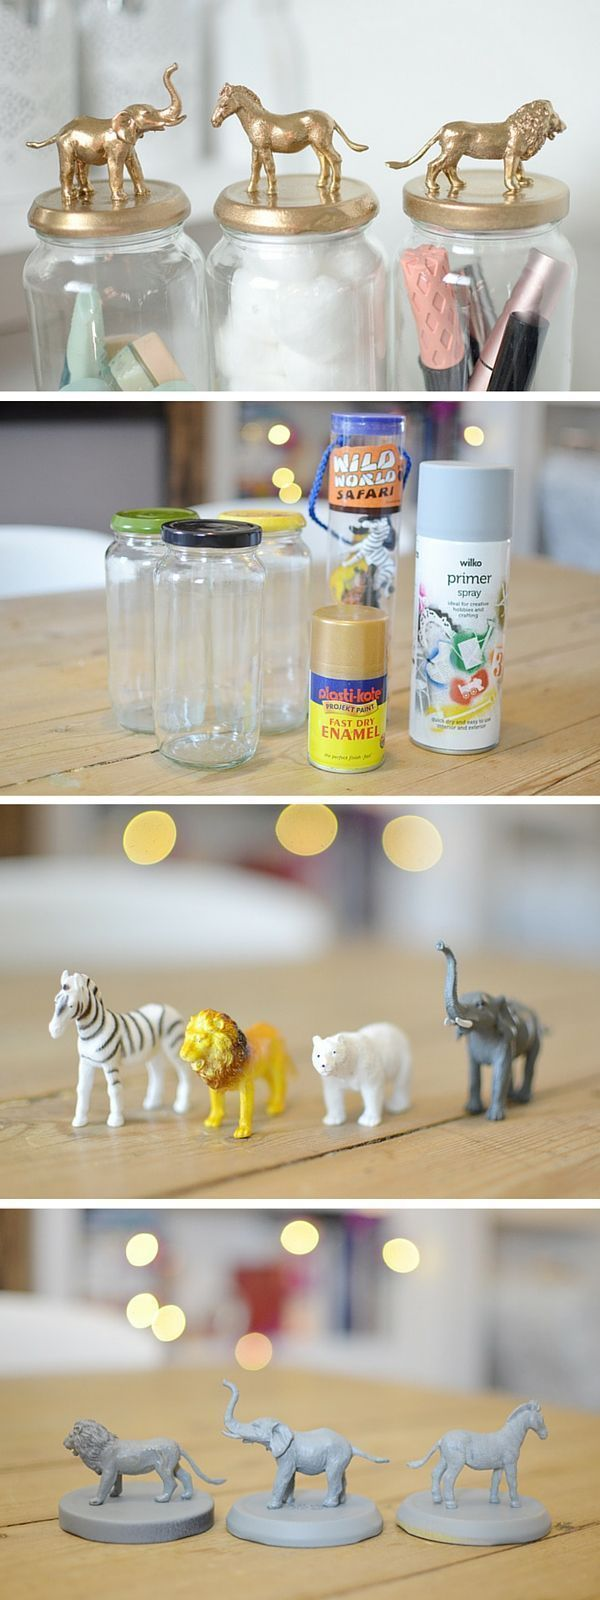 10 brillante DIY Home Decor Ideen, sehen Sie das Tutorial: # DIY Gold …